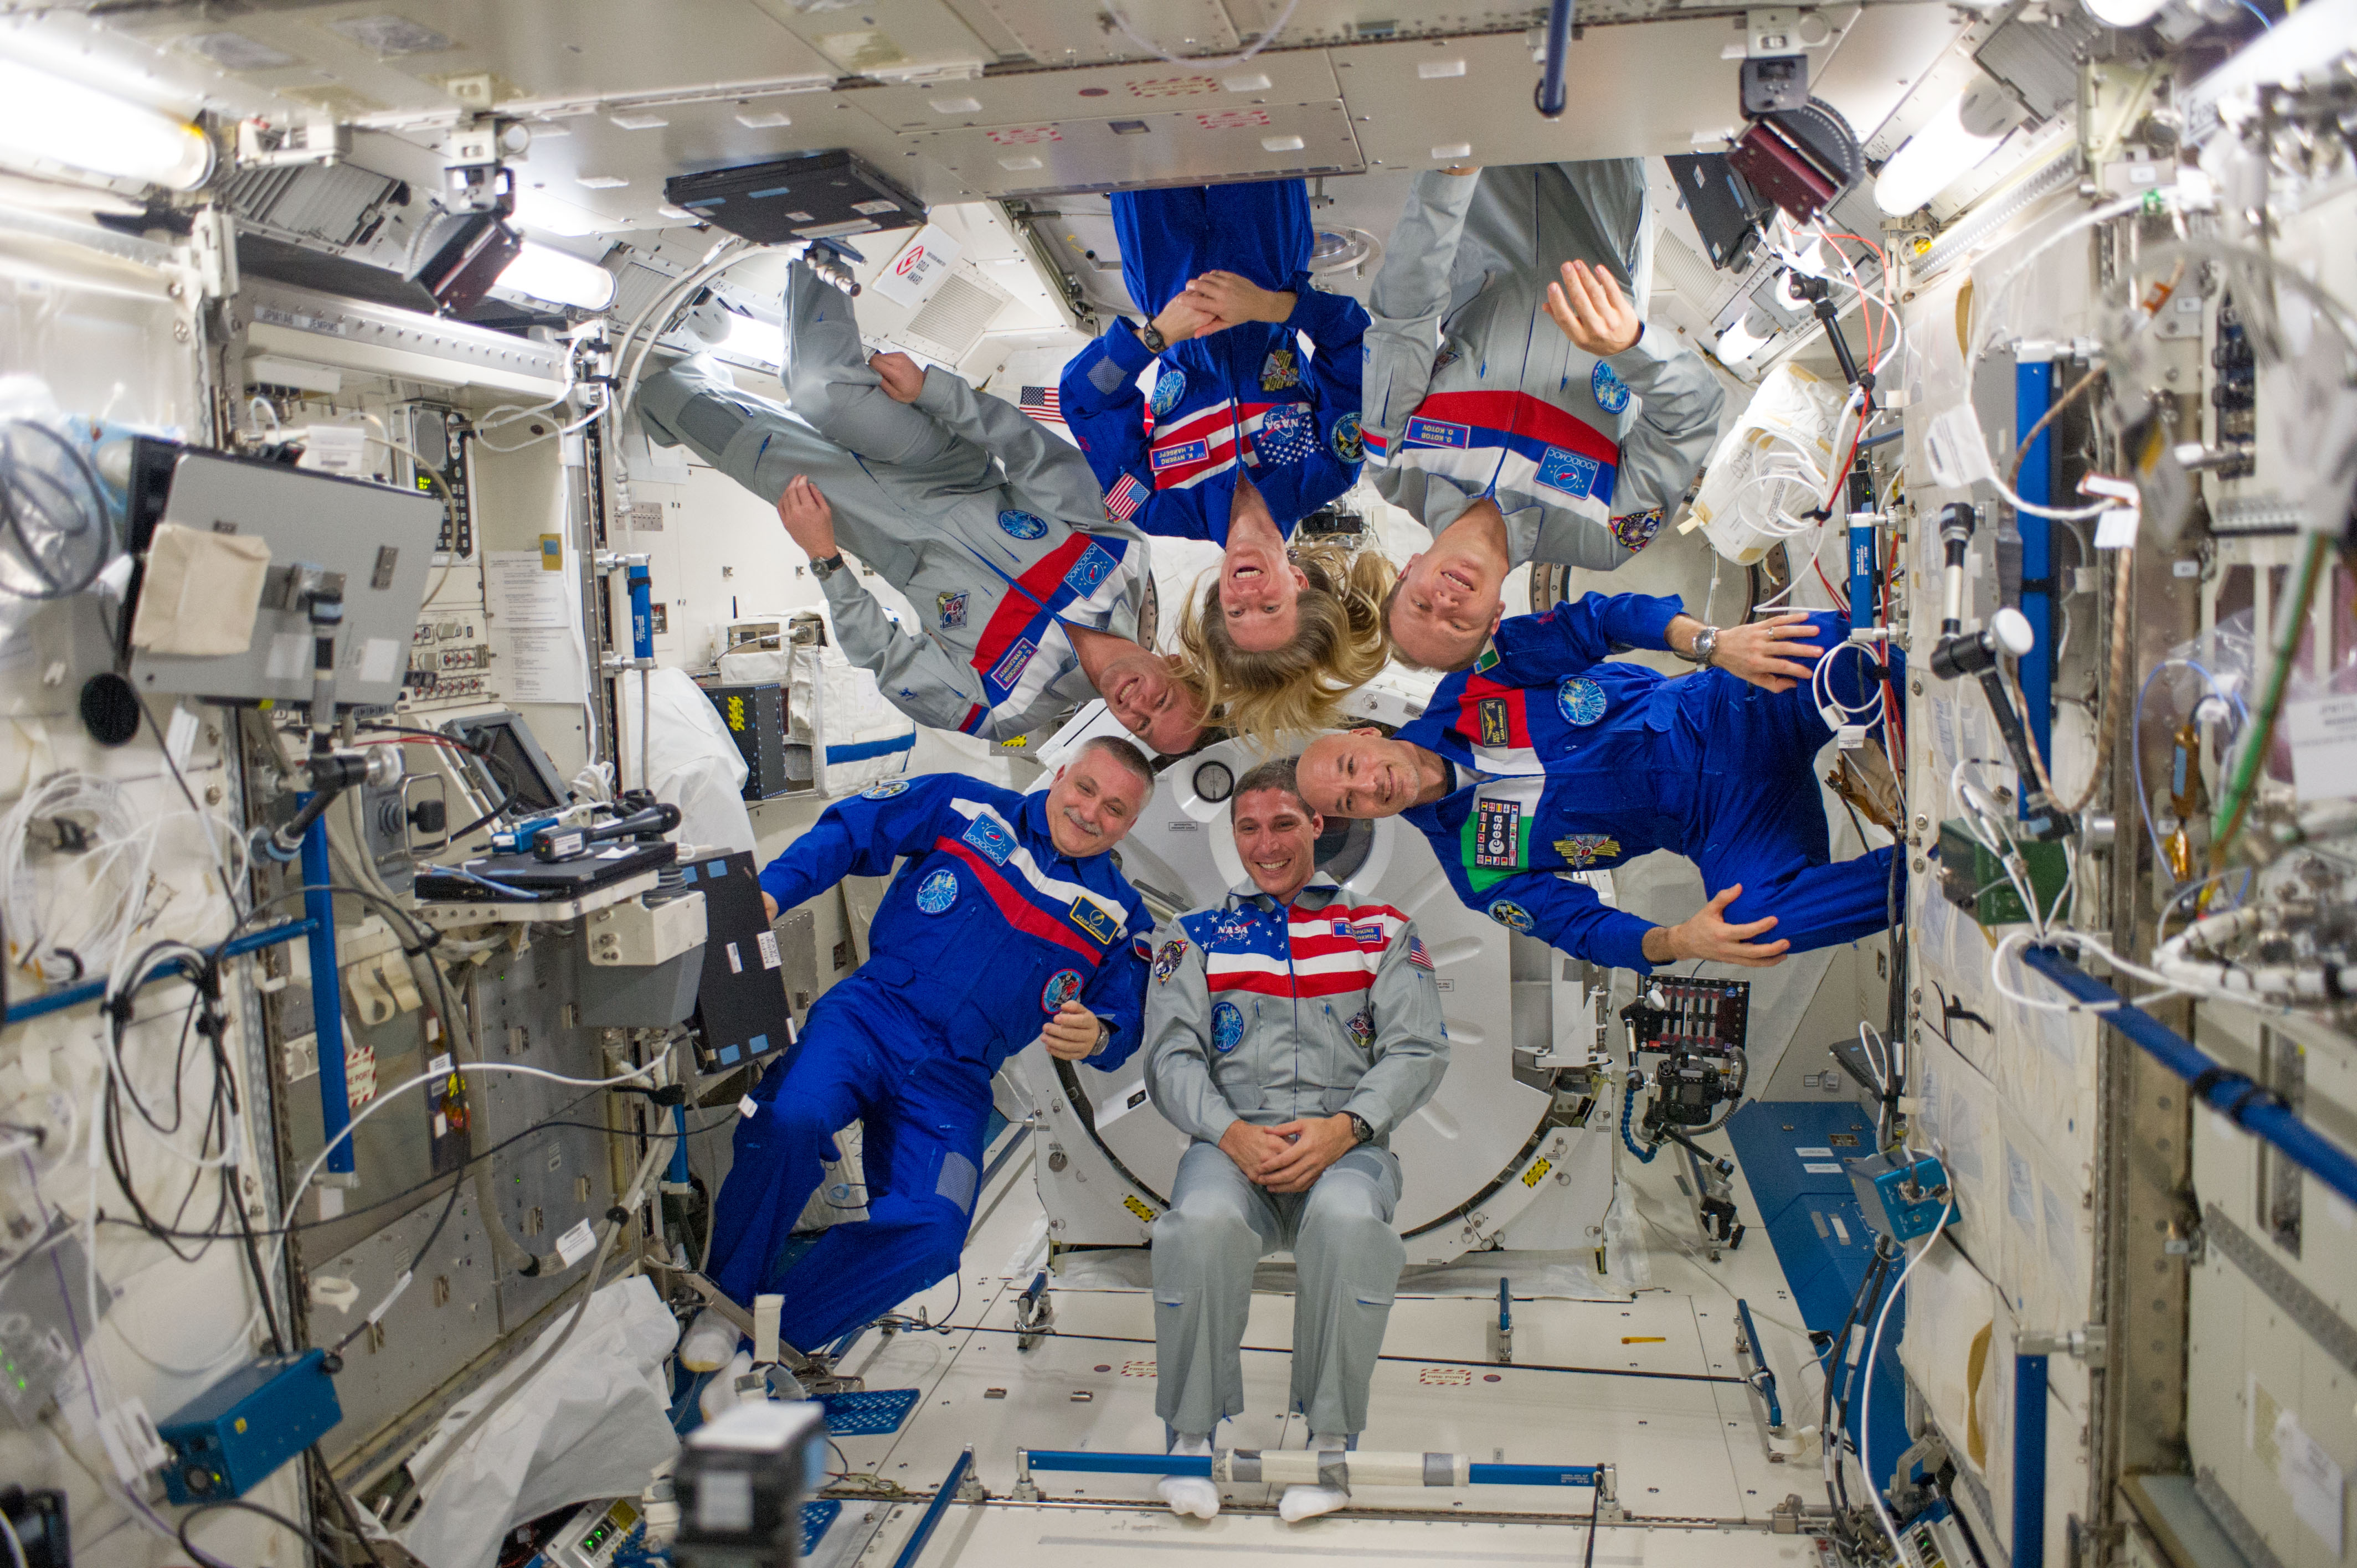 inside space station images - photo #4